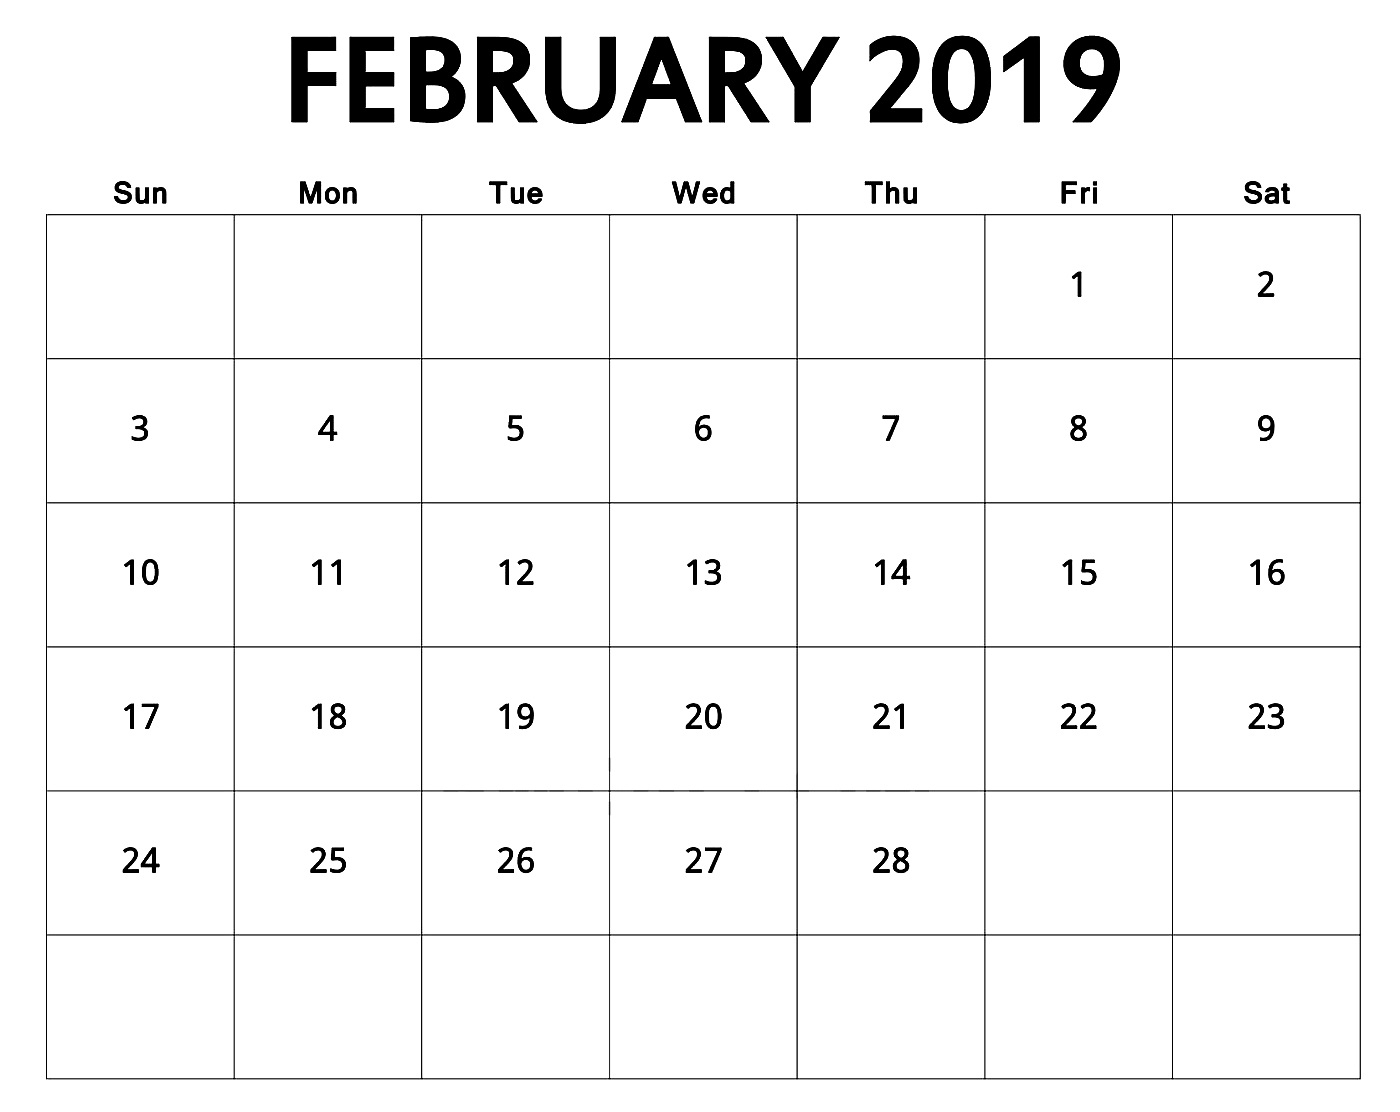 cute february 2019 calendar printable best calendar printable pdf::February 2019 Calendar Template Printable